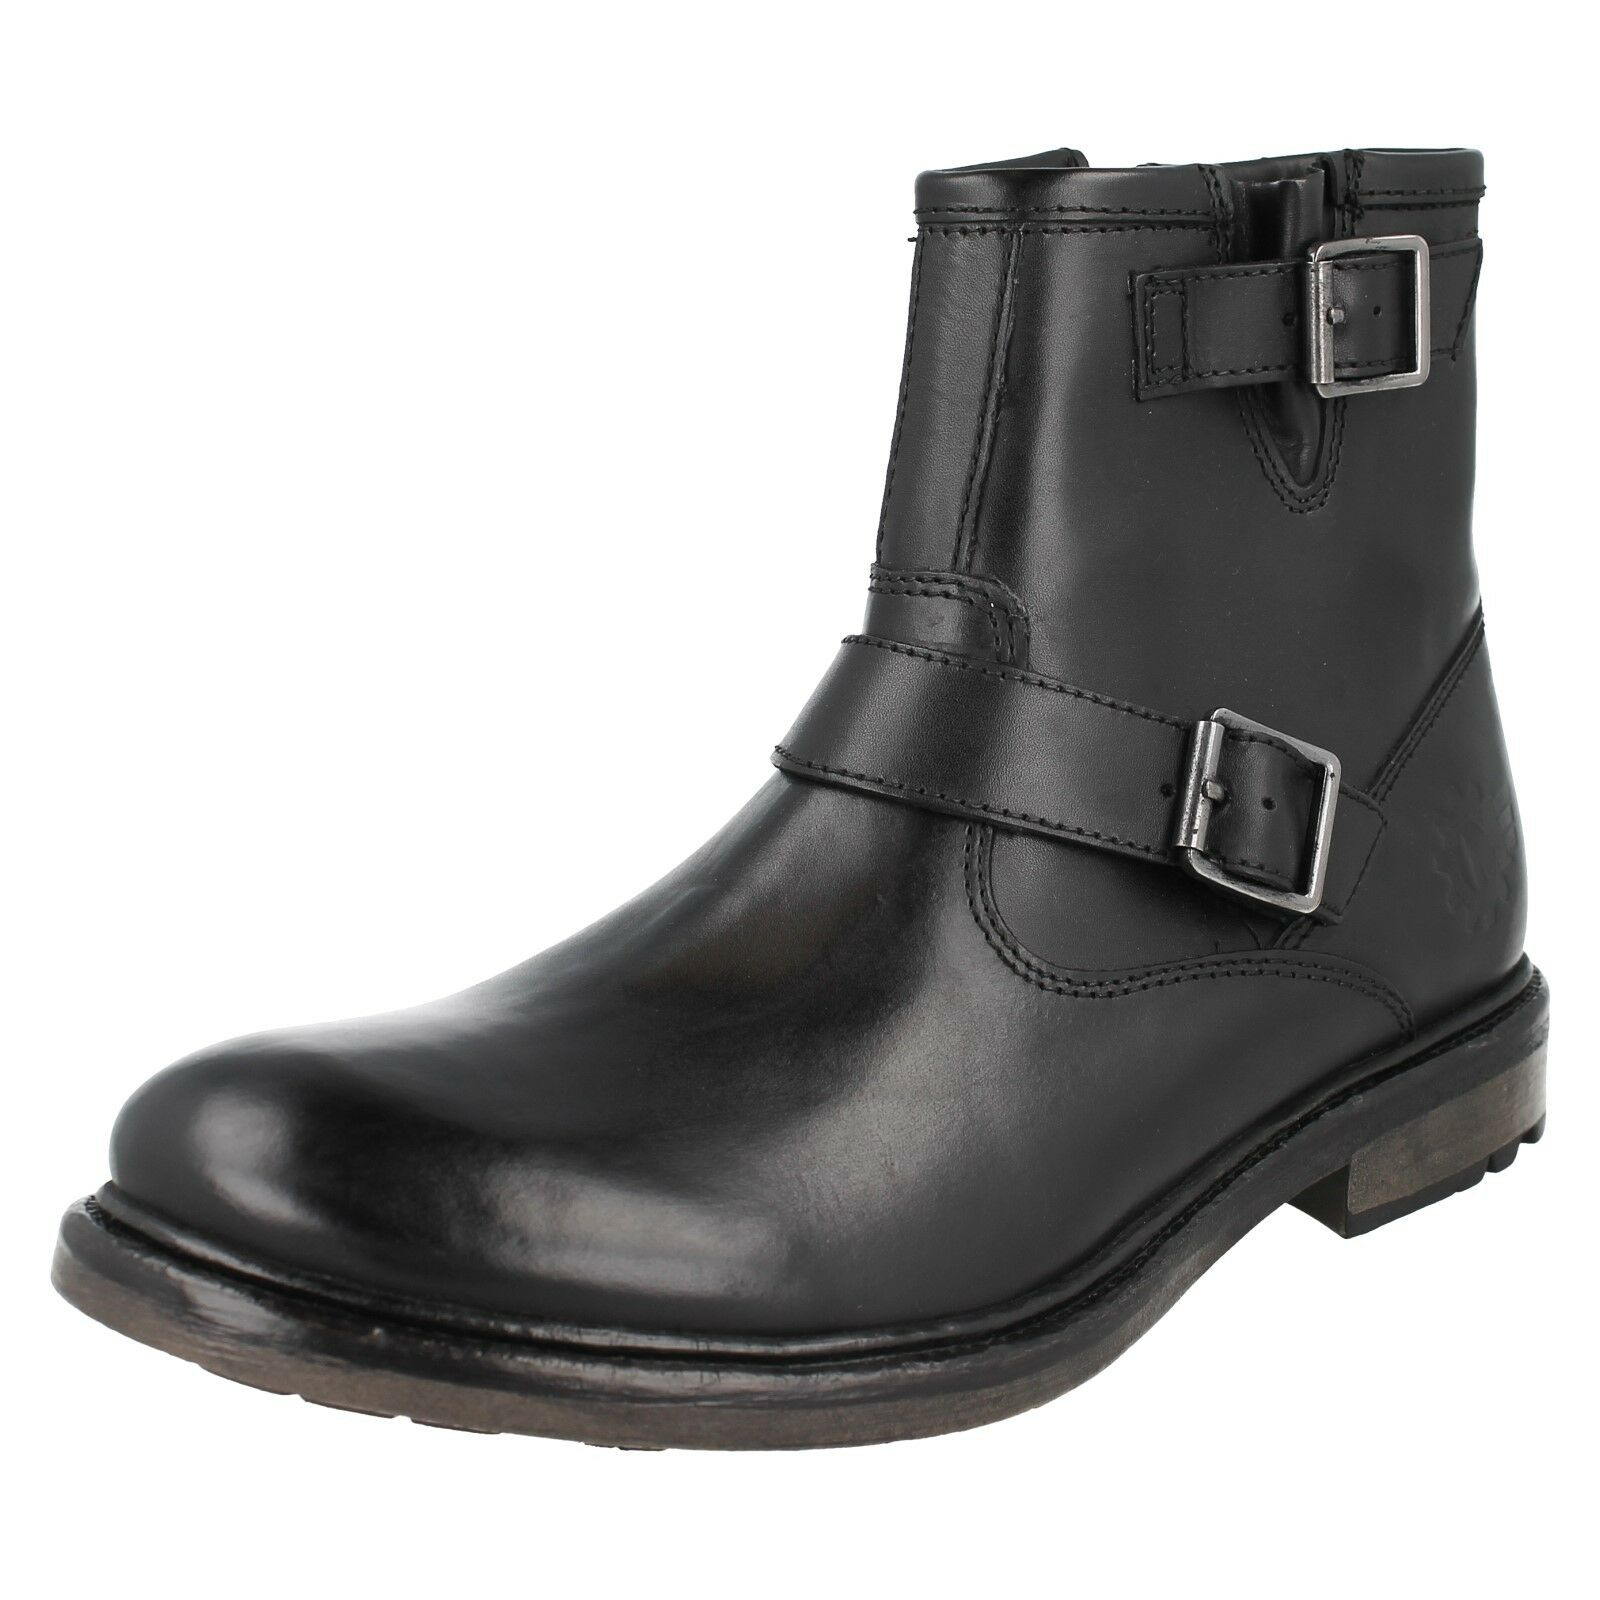 MENS BASE LONDON ZINC PLAIN BLACK LEATHER BUCKLE ZIP UP CASUAL MOTOR ANKLE BOOTS